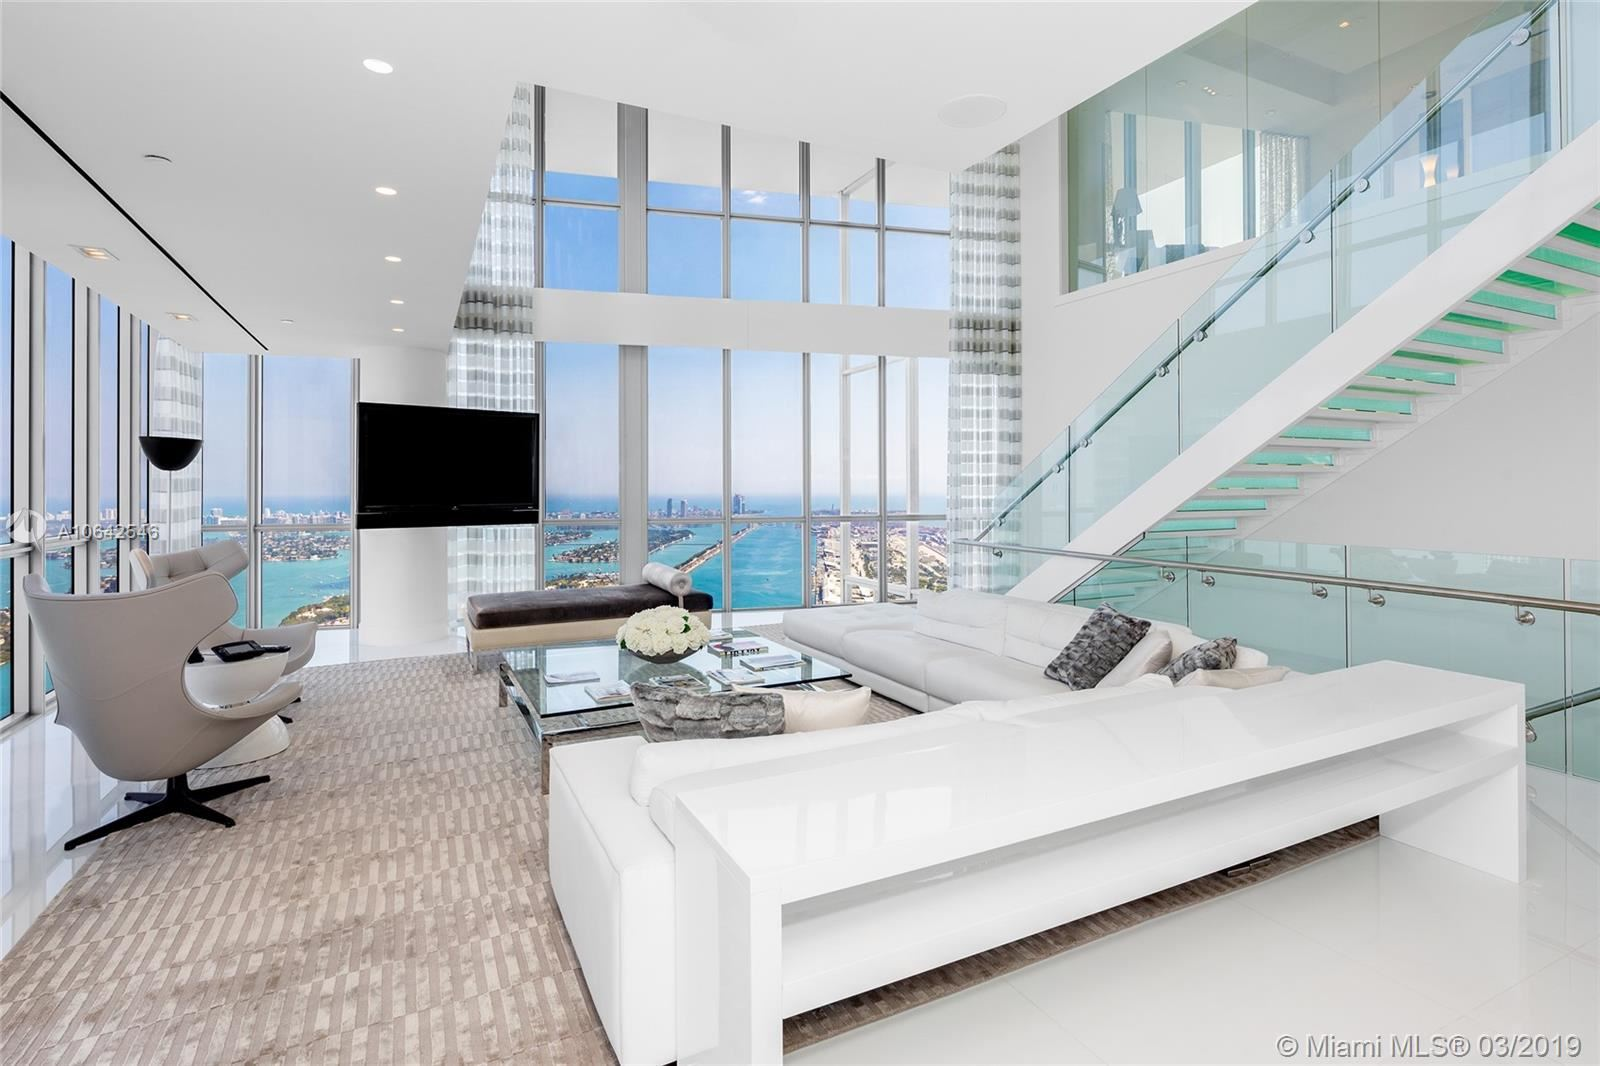 Photo 9 of Listing MLS a10642546 in 1100 Biscayne Blvd #6401 Miami FL 33132